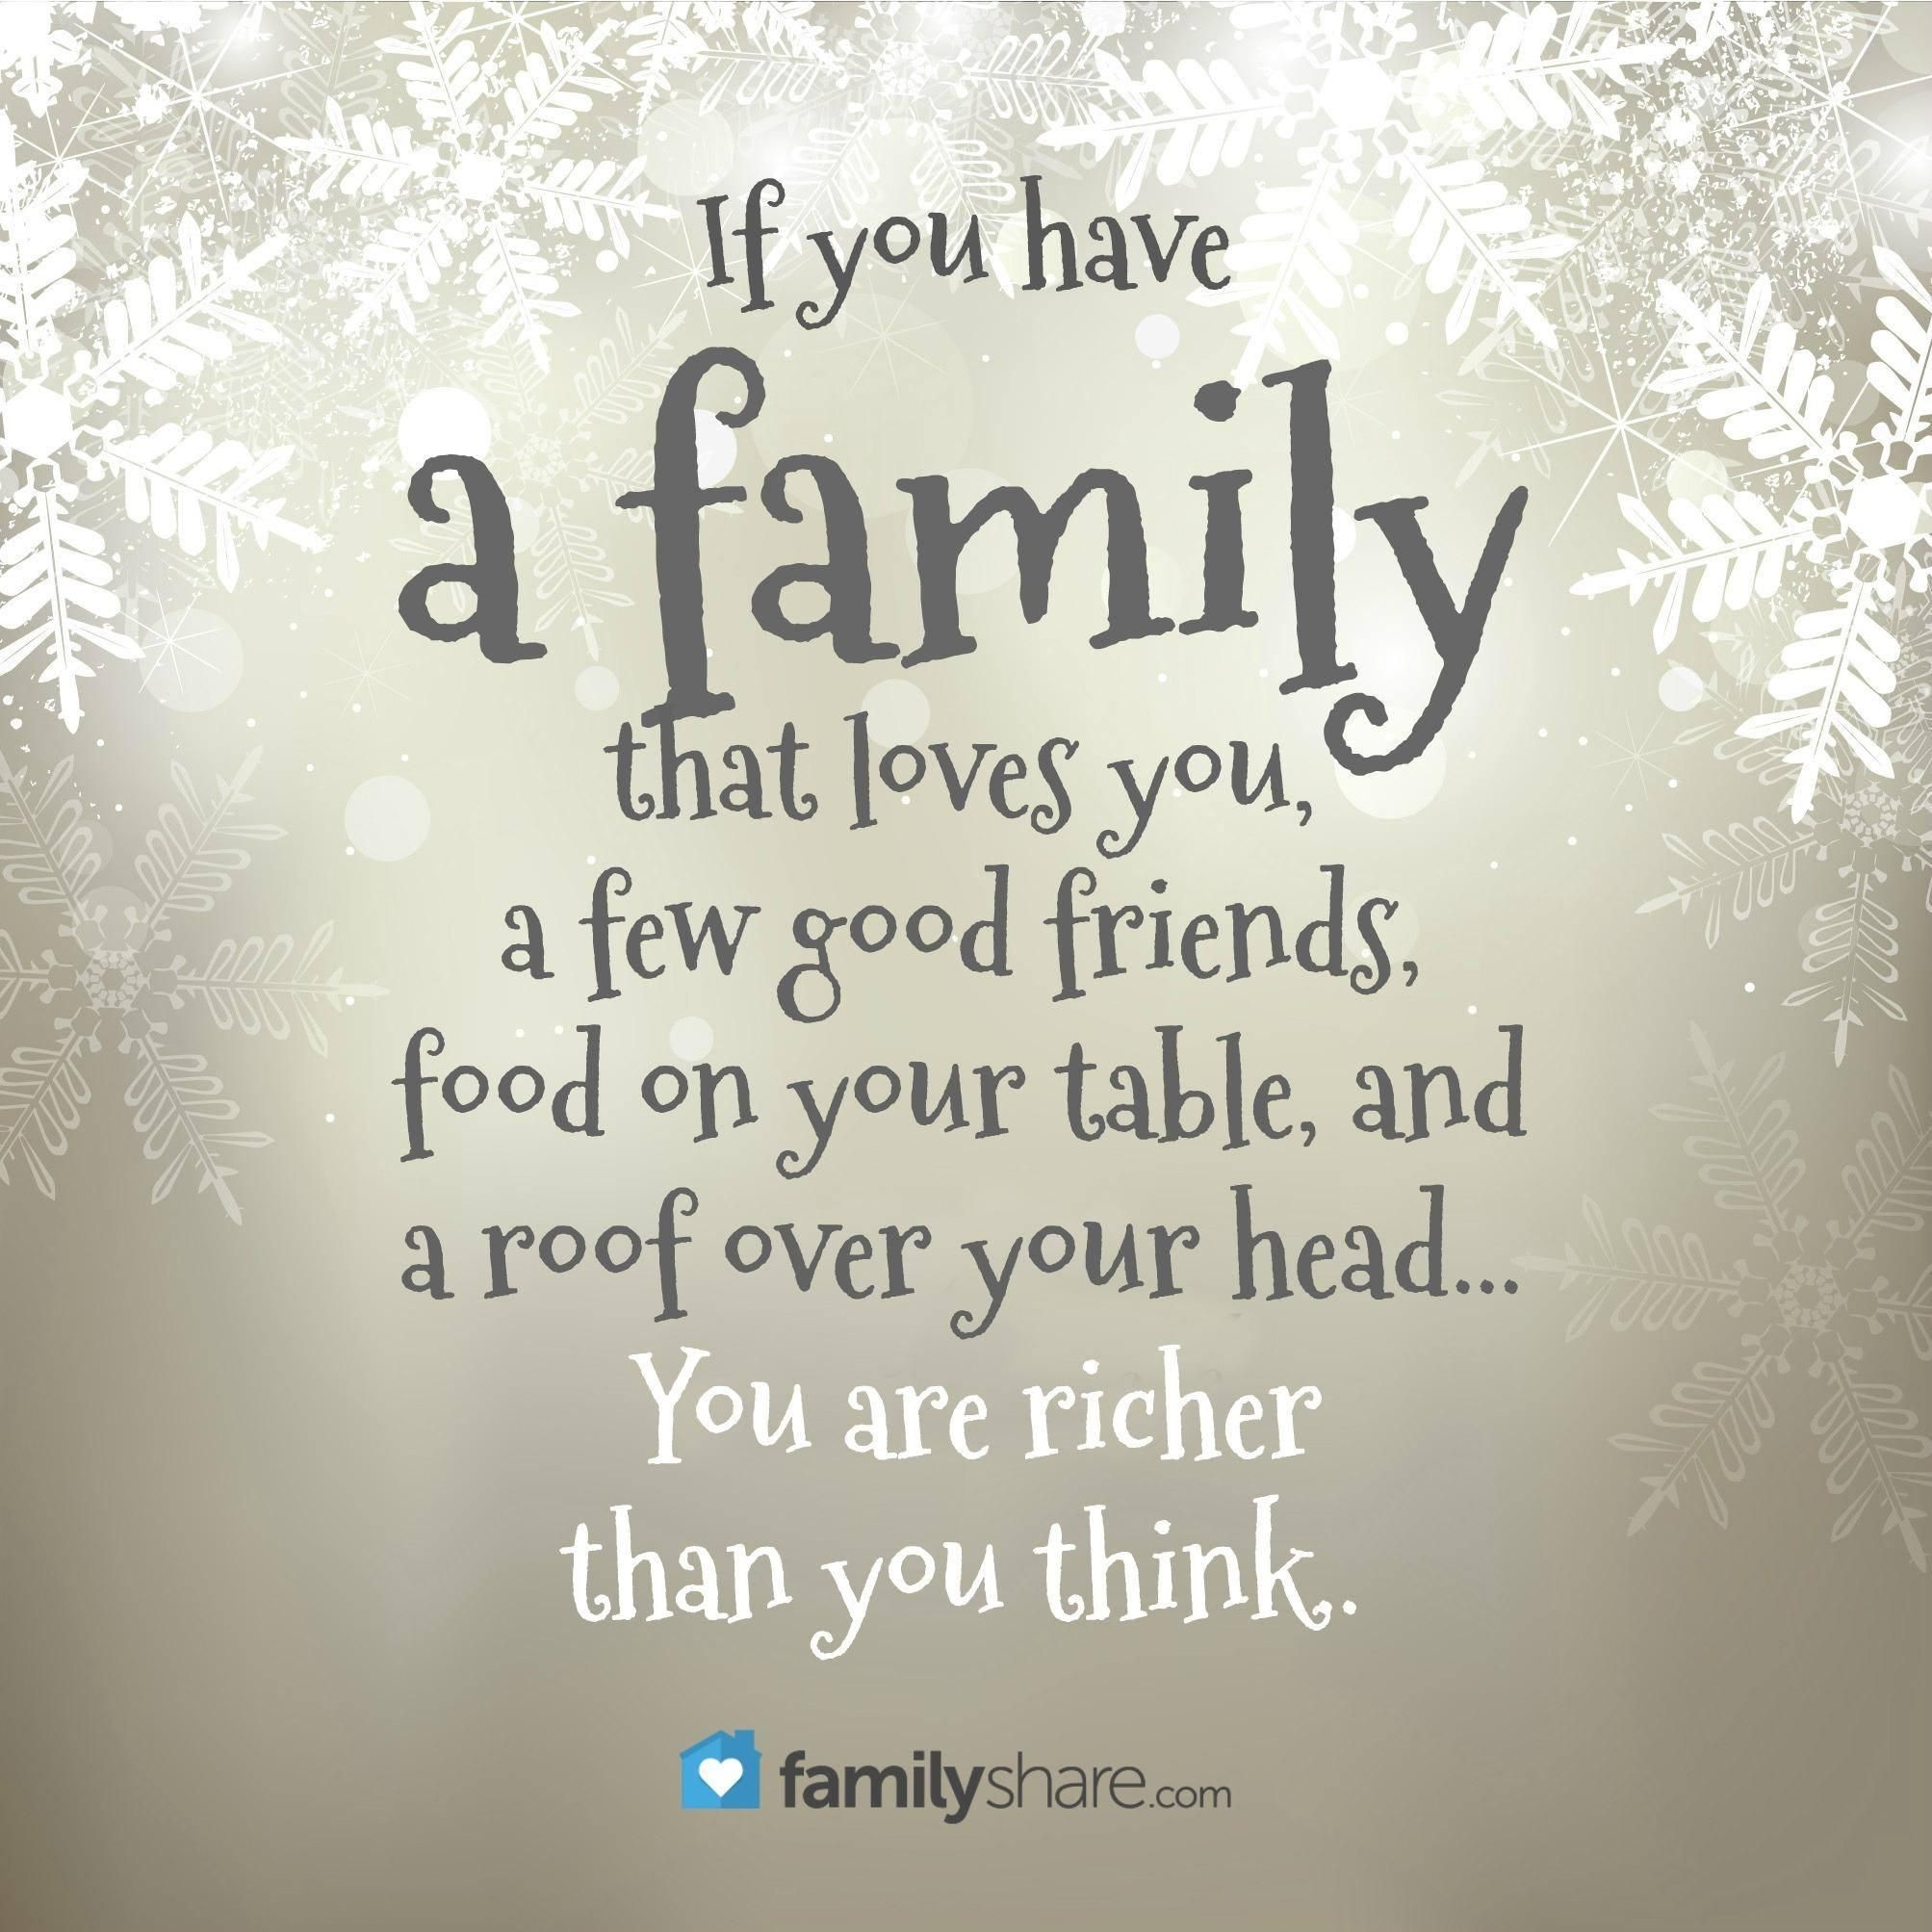 Quotes About Food And Friendship If You Have A Family That Loves You A Few Good Friends Food On